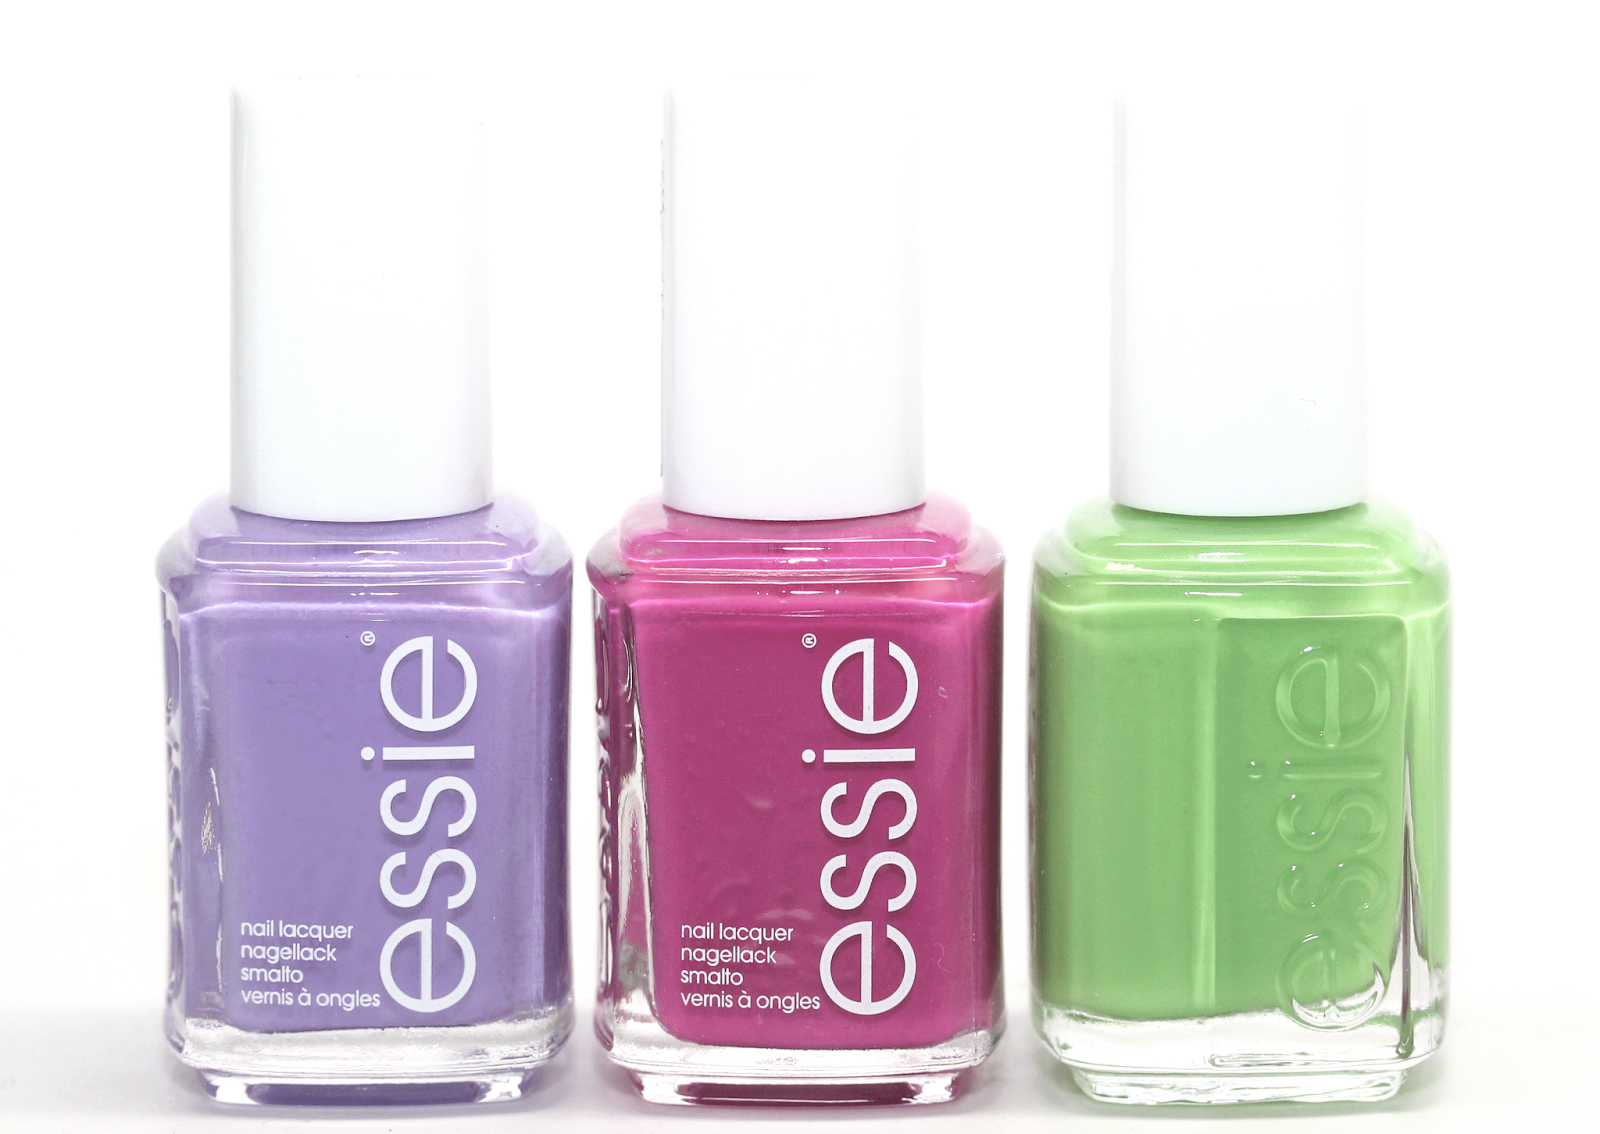 ESSIE NEON COLLECTION: REVIEW, PHOTOS & SWATCHES   Makeup Revolution